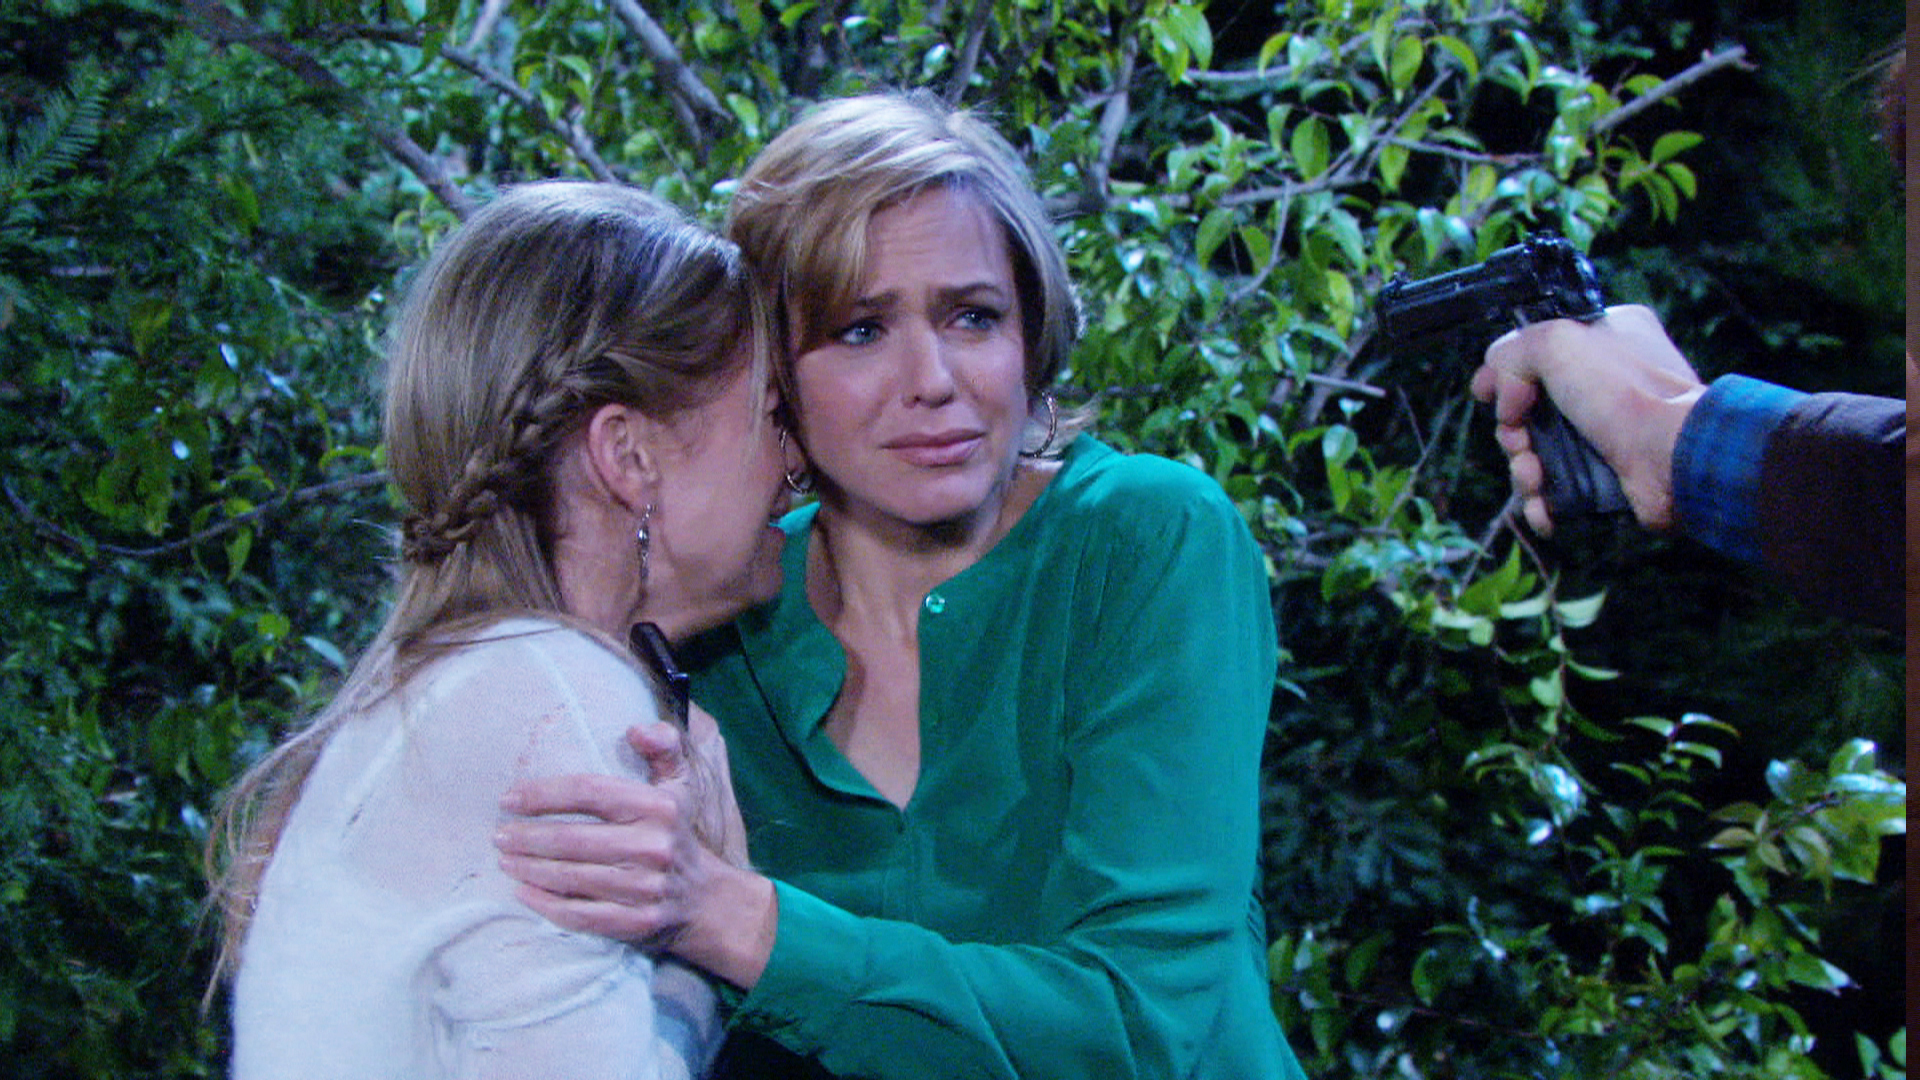 Nicole and Jennifer fight to escape Liam - and someone gets shot!